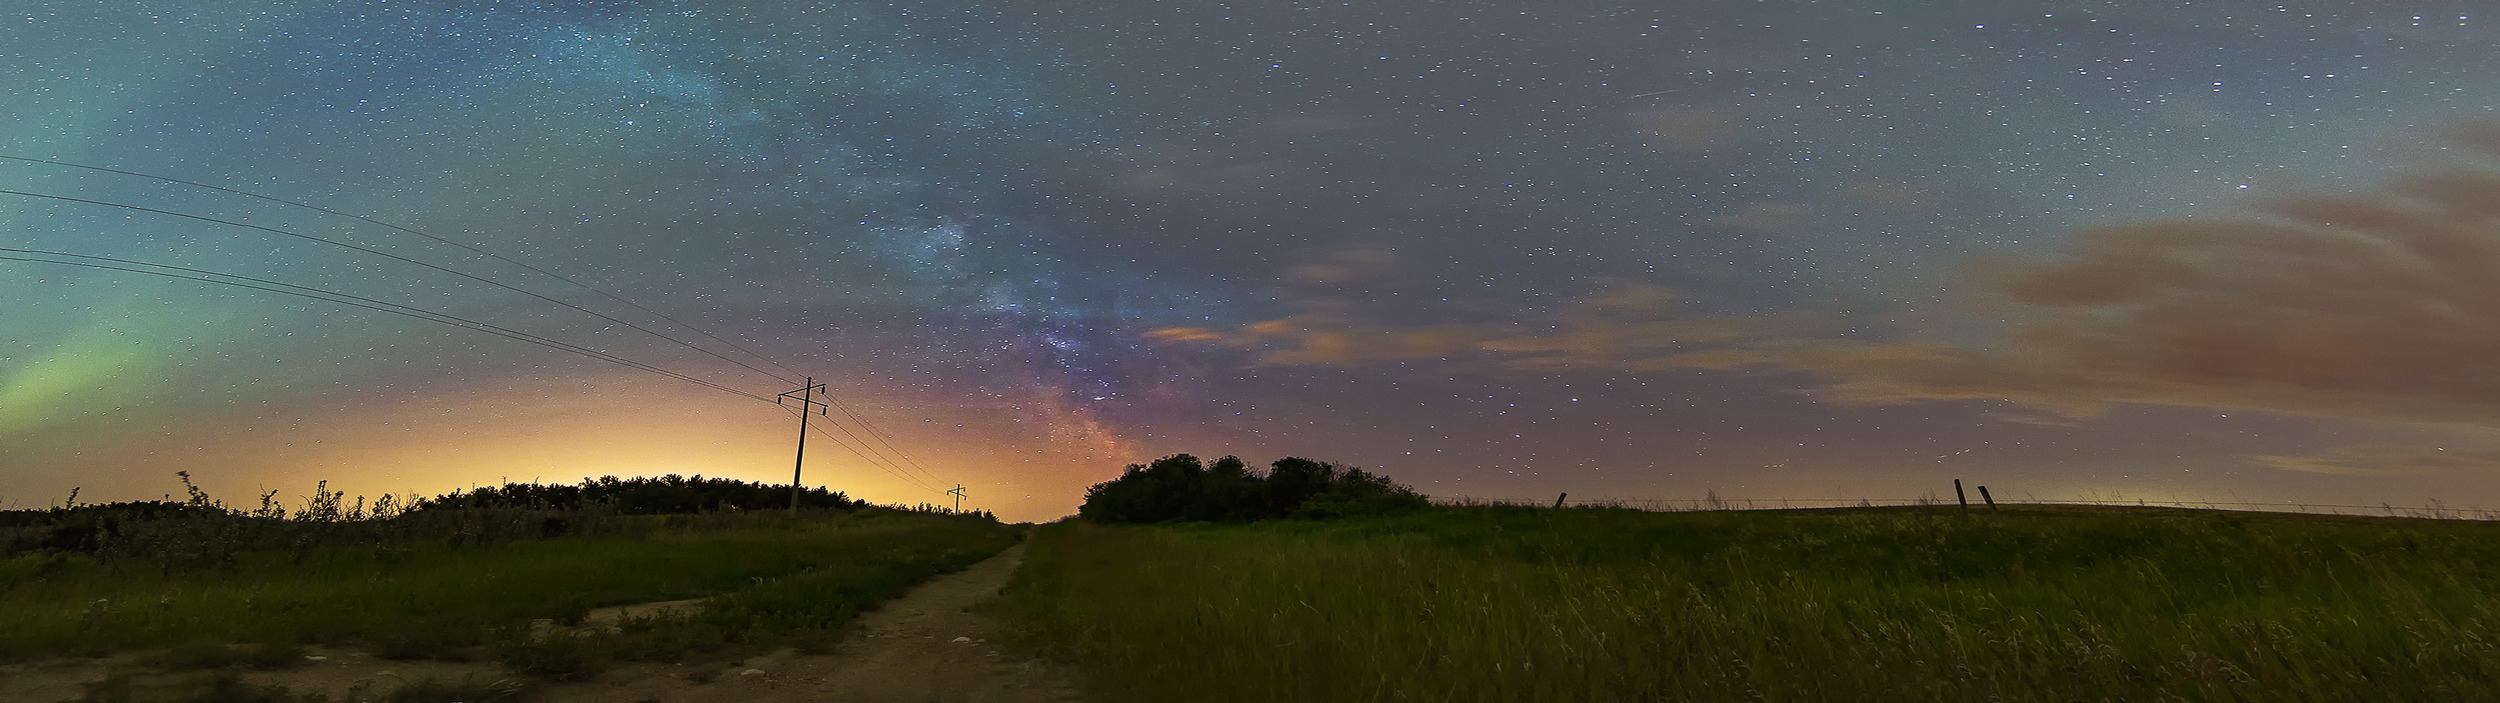 7 shot panoramic featuring aurora, light pollution from Regina, Milky Way, and clouds.        11mm    f/2.8   30  s   ISO1600